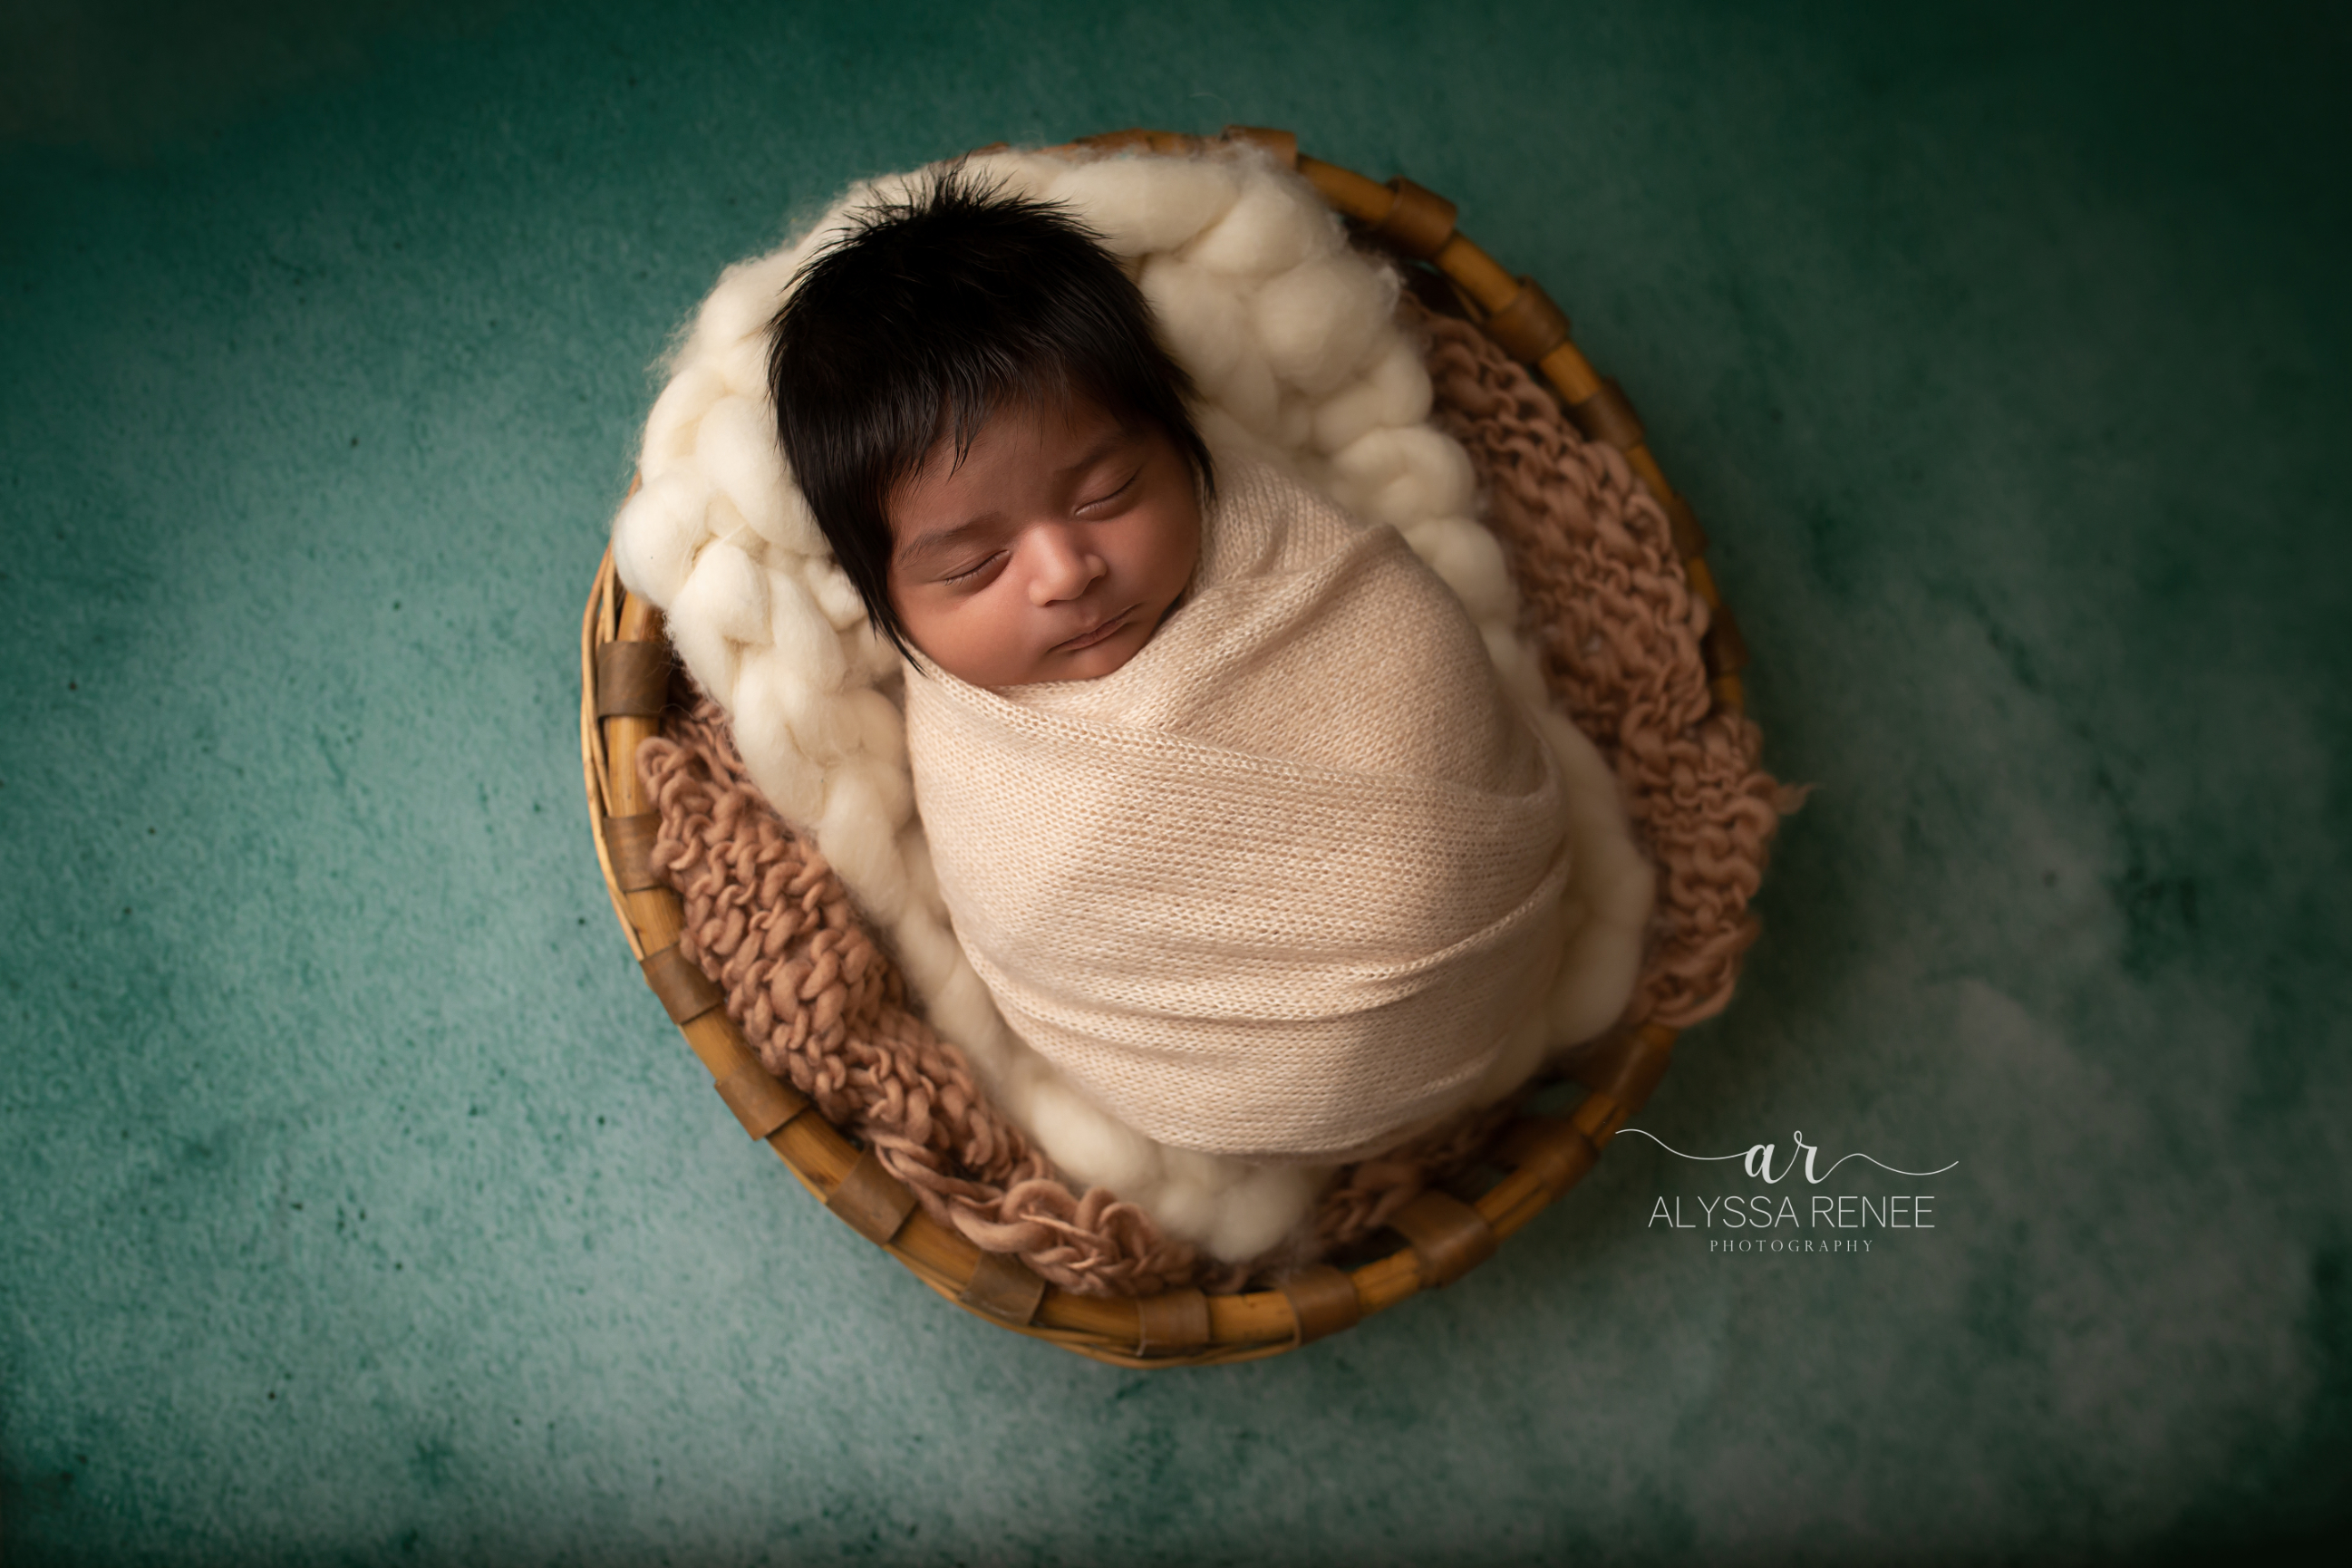 Portrait of baby swaddled in a basket on a green background with handmade prop by Alyssa Renee Photography